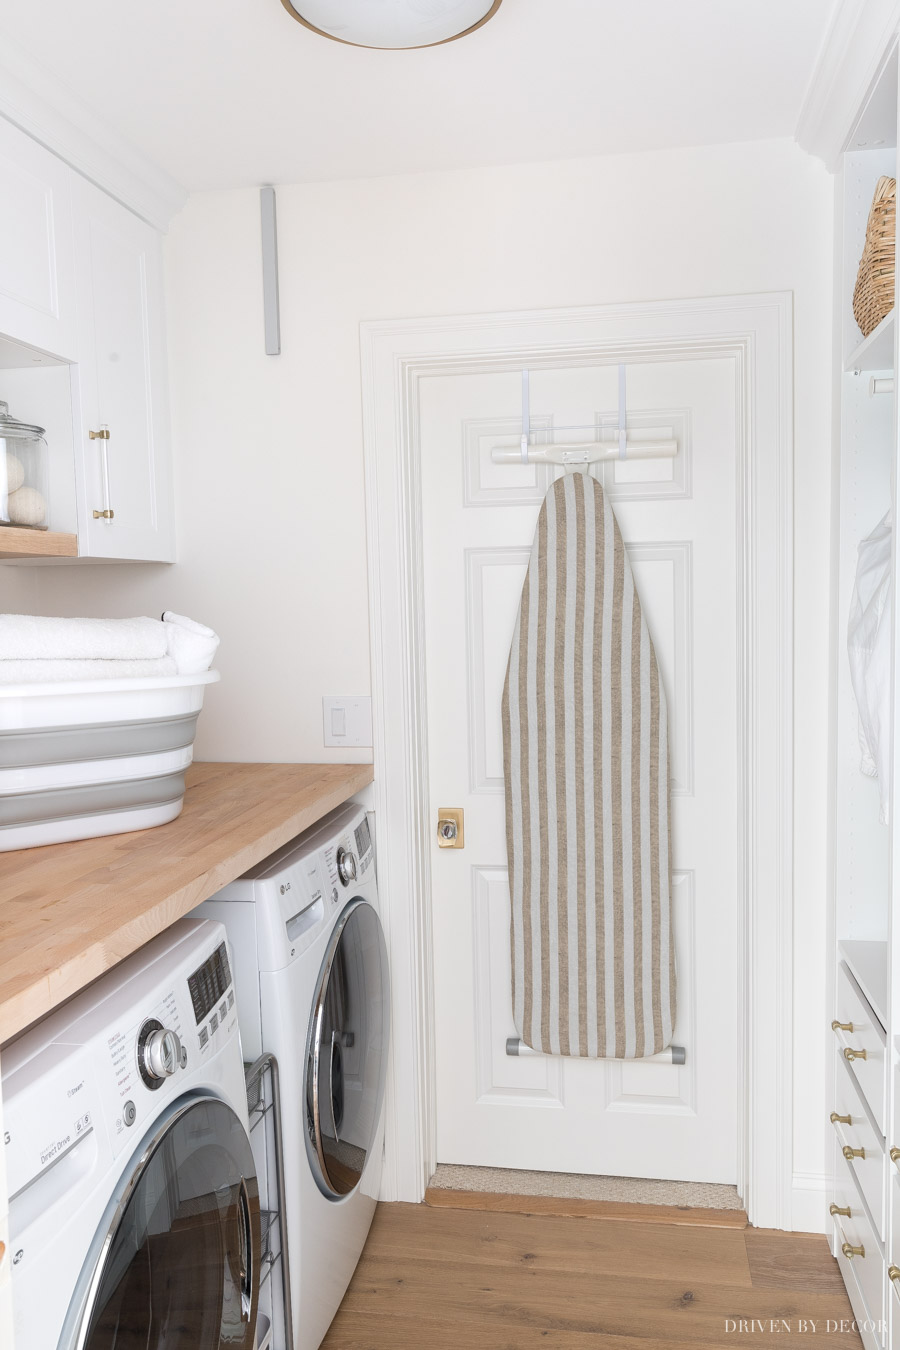 Free up space in your laundry room by hanging your ironing board on the back of the door!